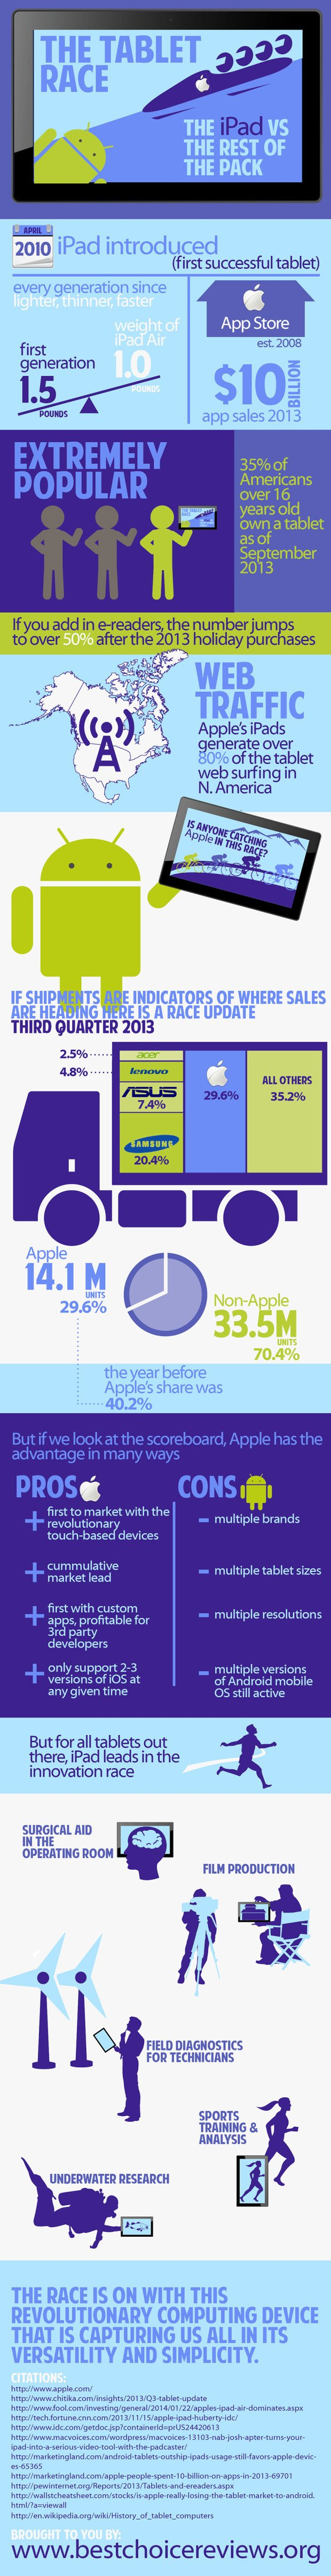 tablets race infographic